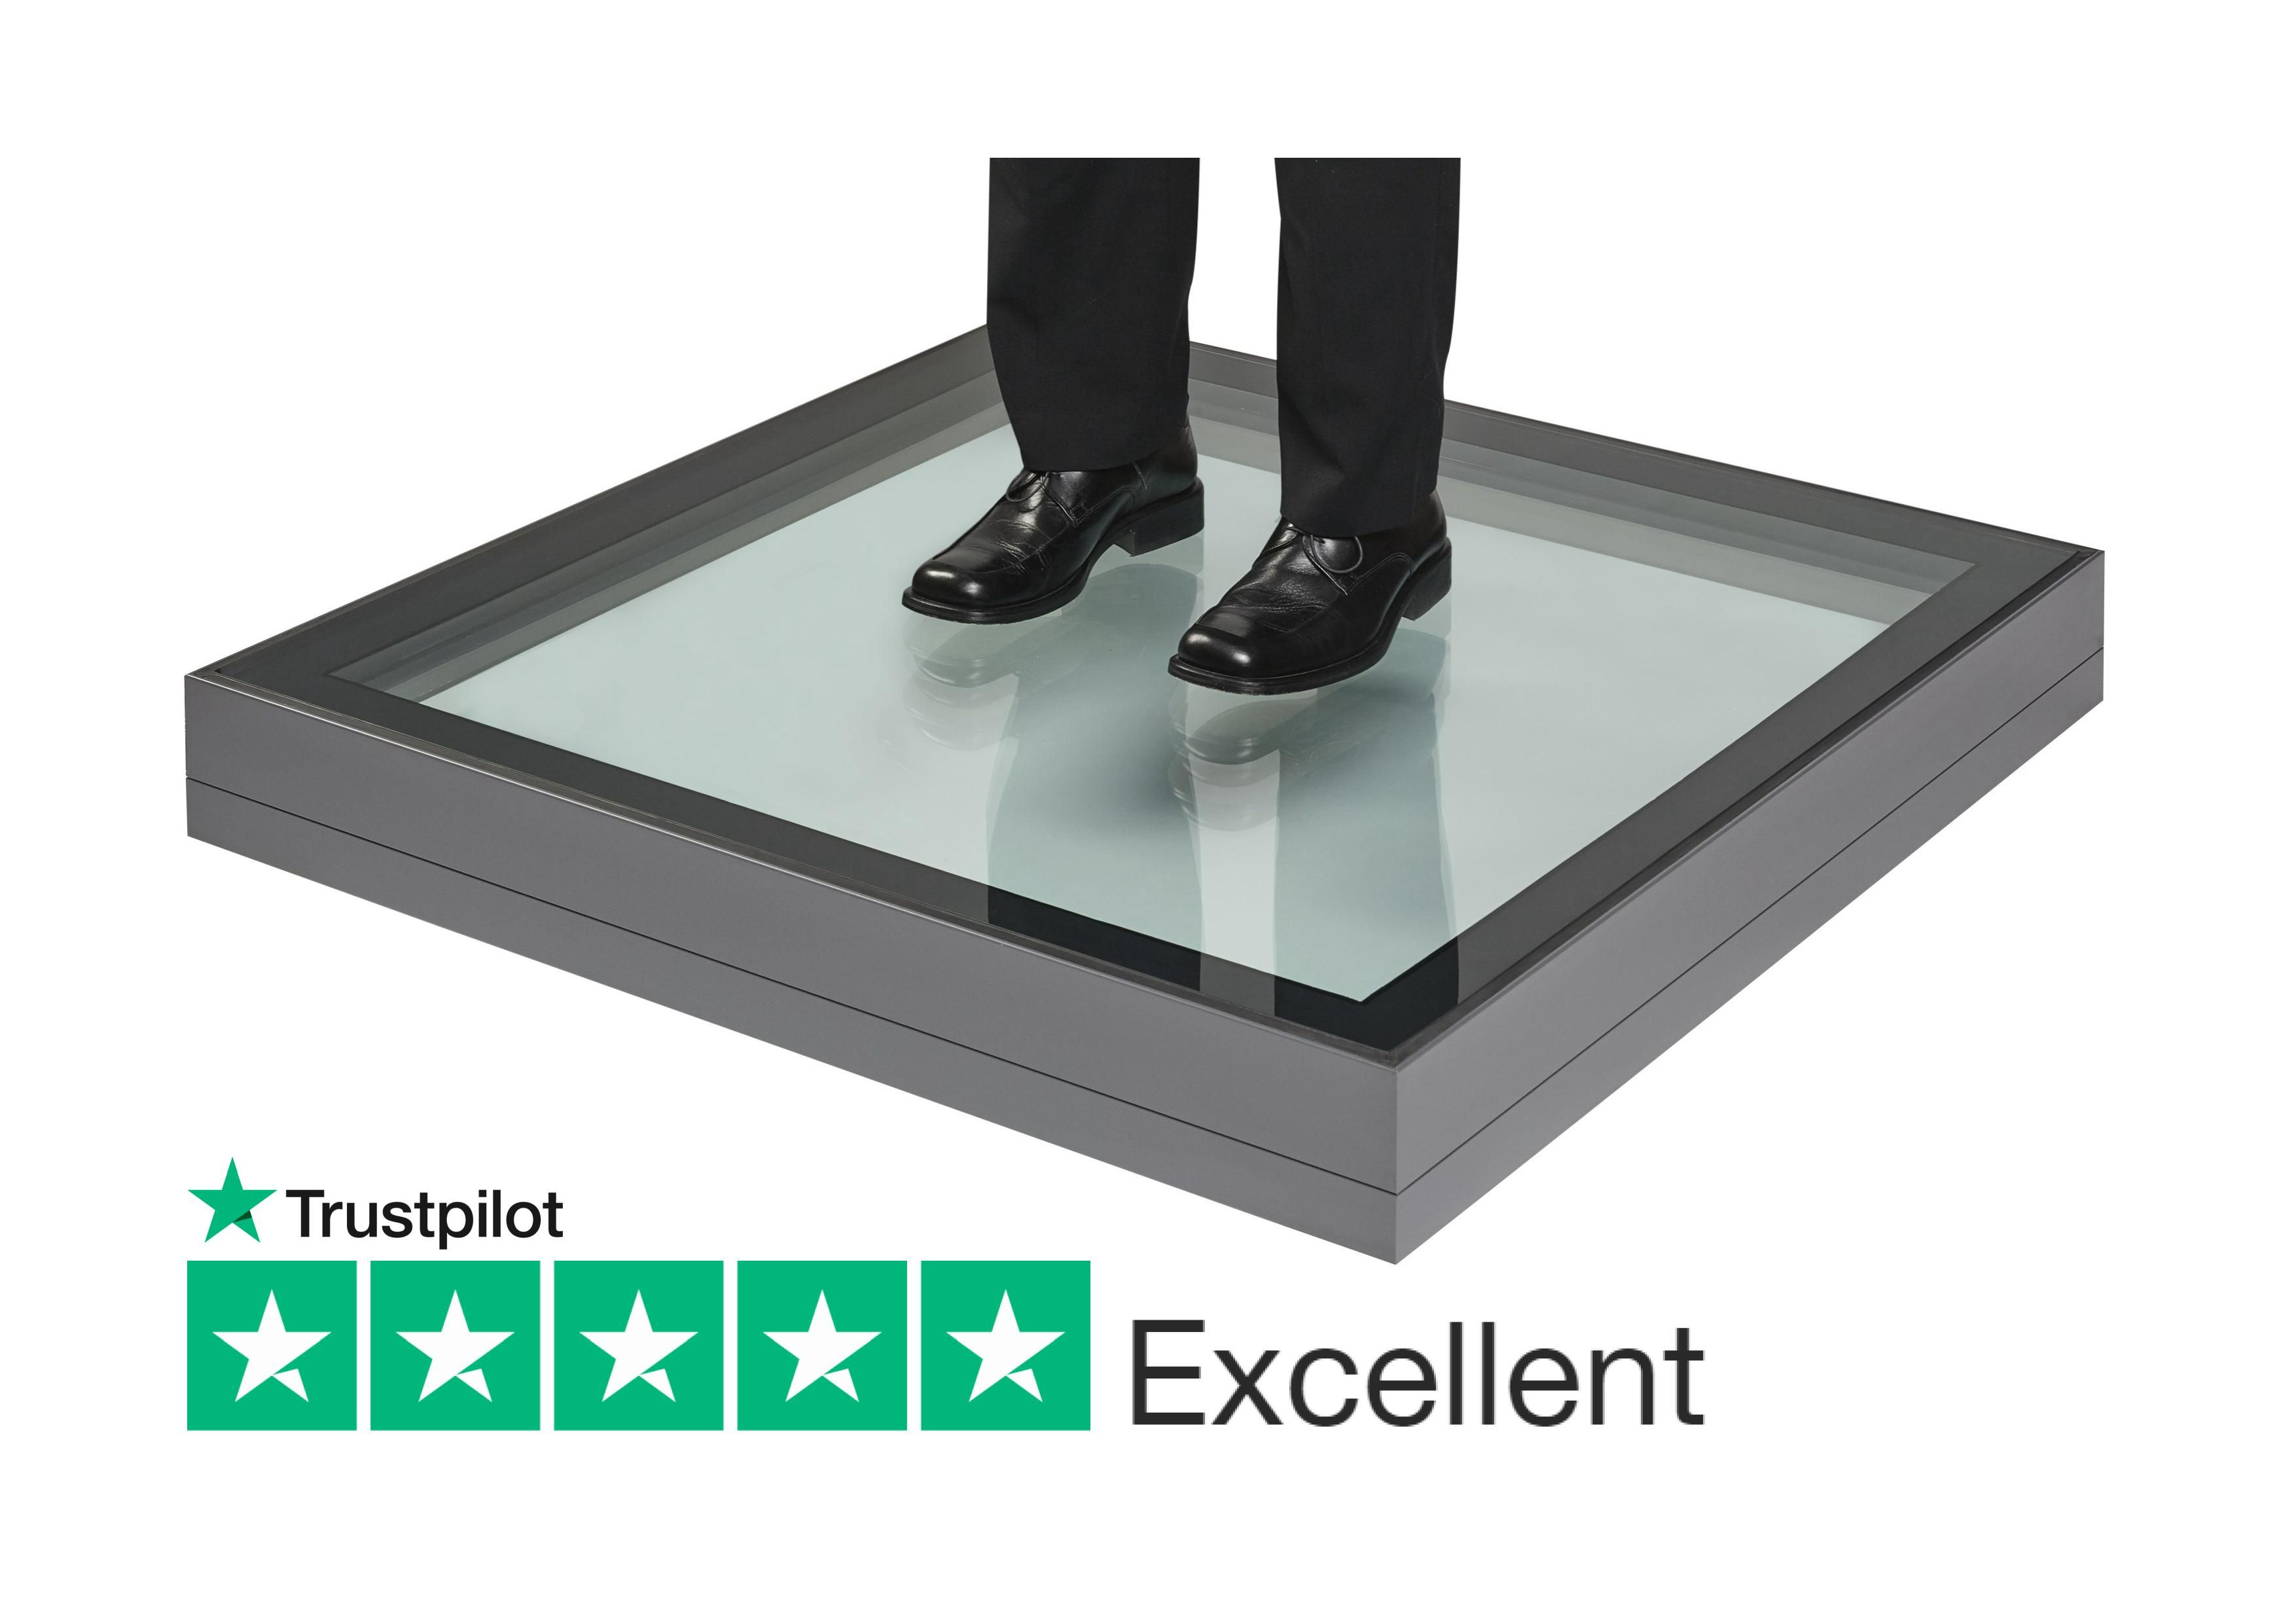 Excellent Trustpilot reviews. Prices from £1235+vat Roof